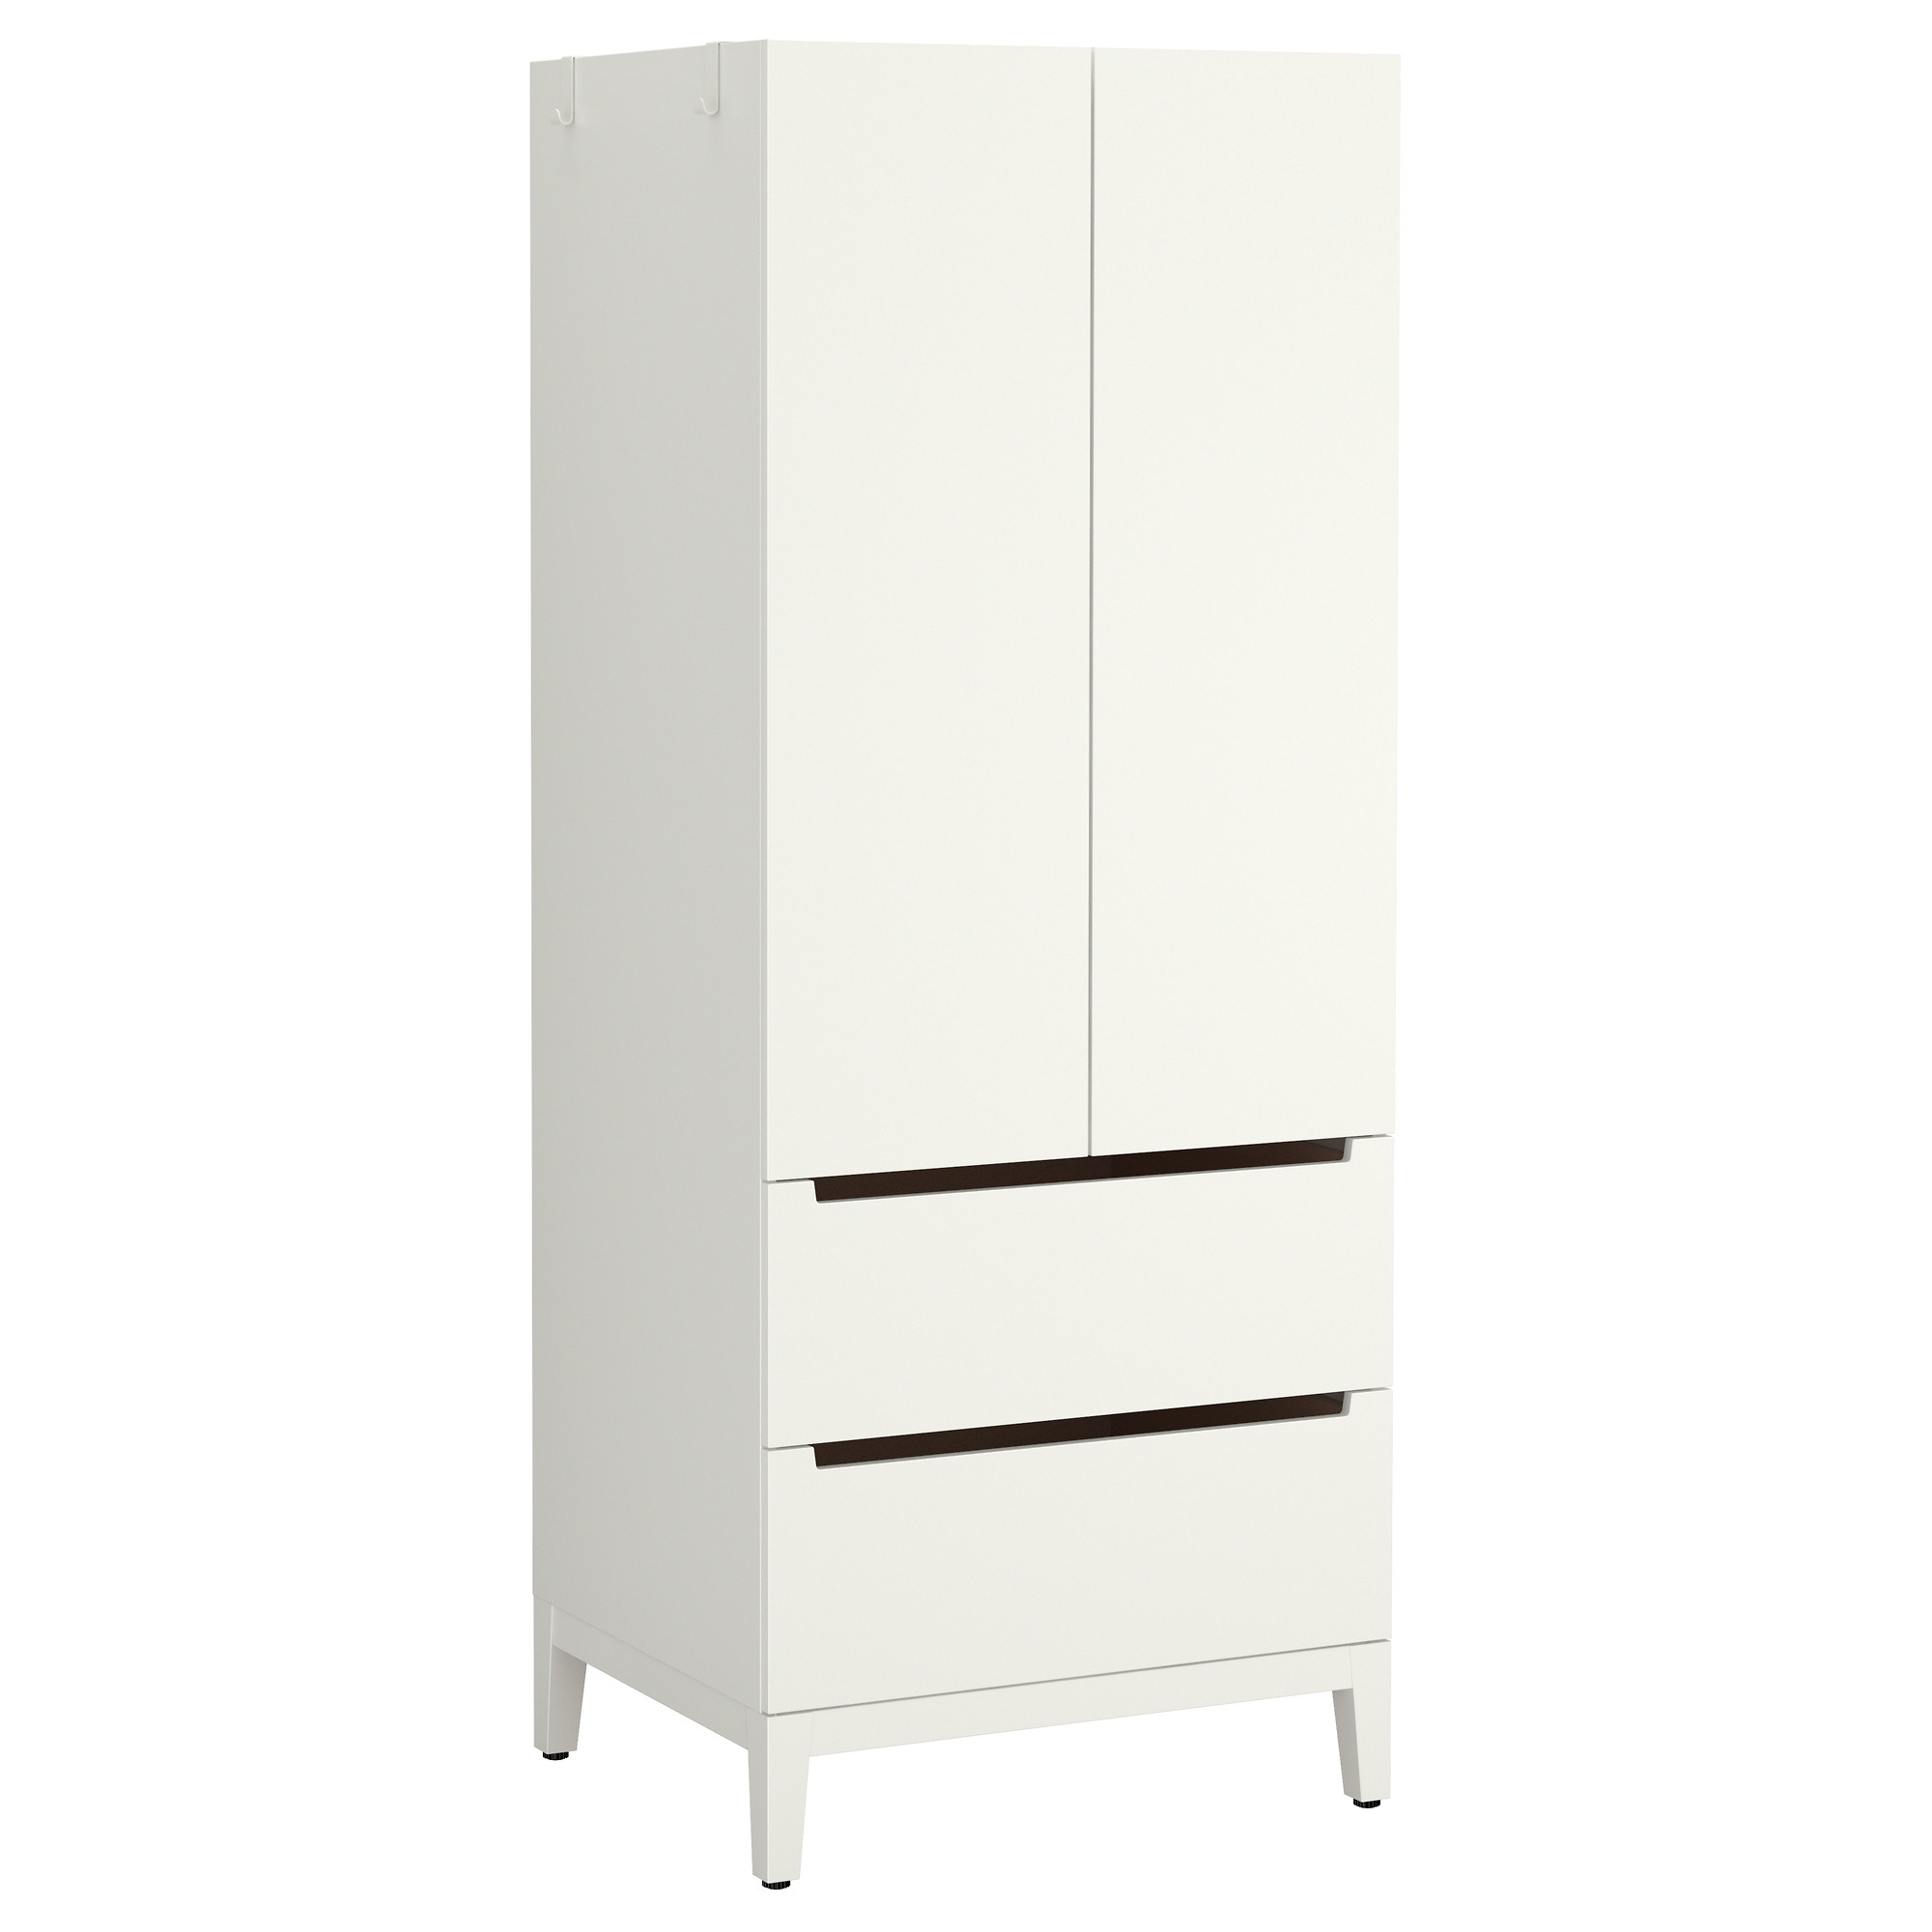 Single Wardrobes With Drawers And Shelves Regarding 2018 Single Wardrobe With Drawers And Shelves Side Door Canvas This Is (View 11 of 15)